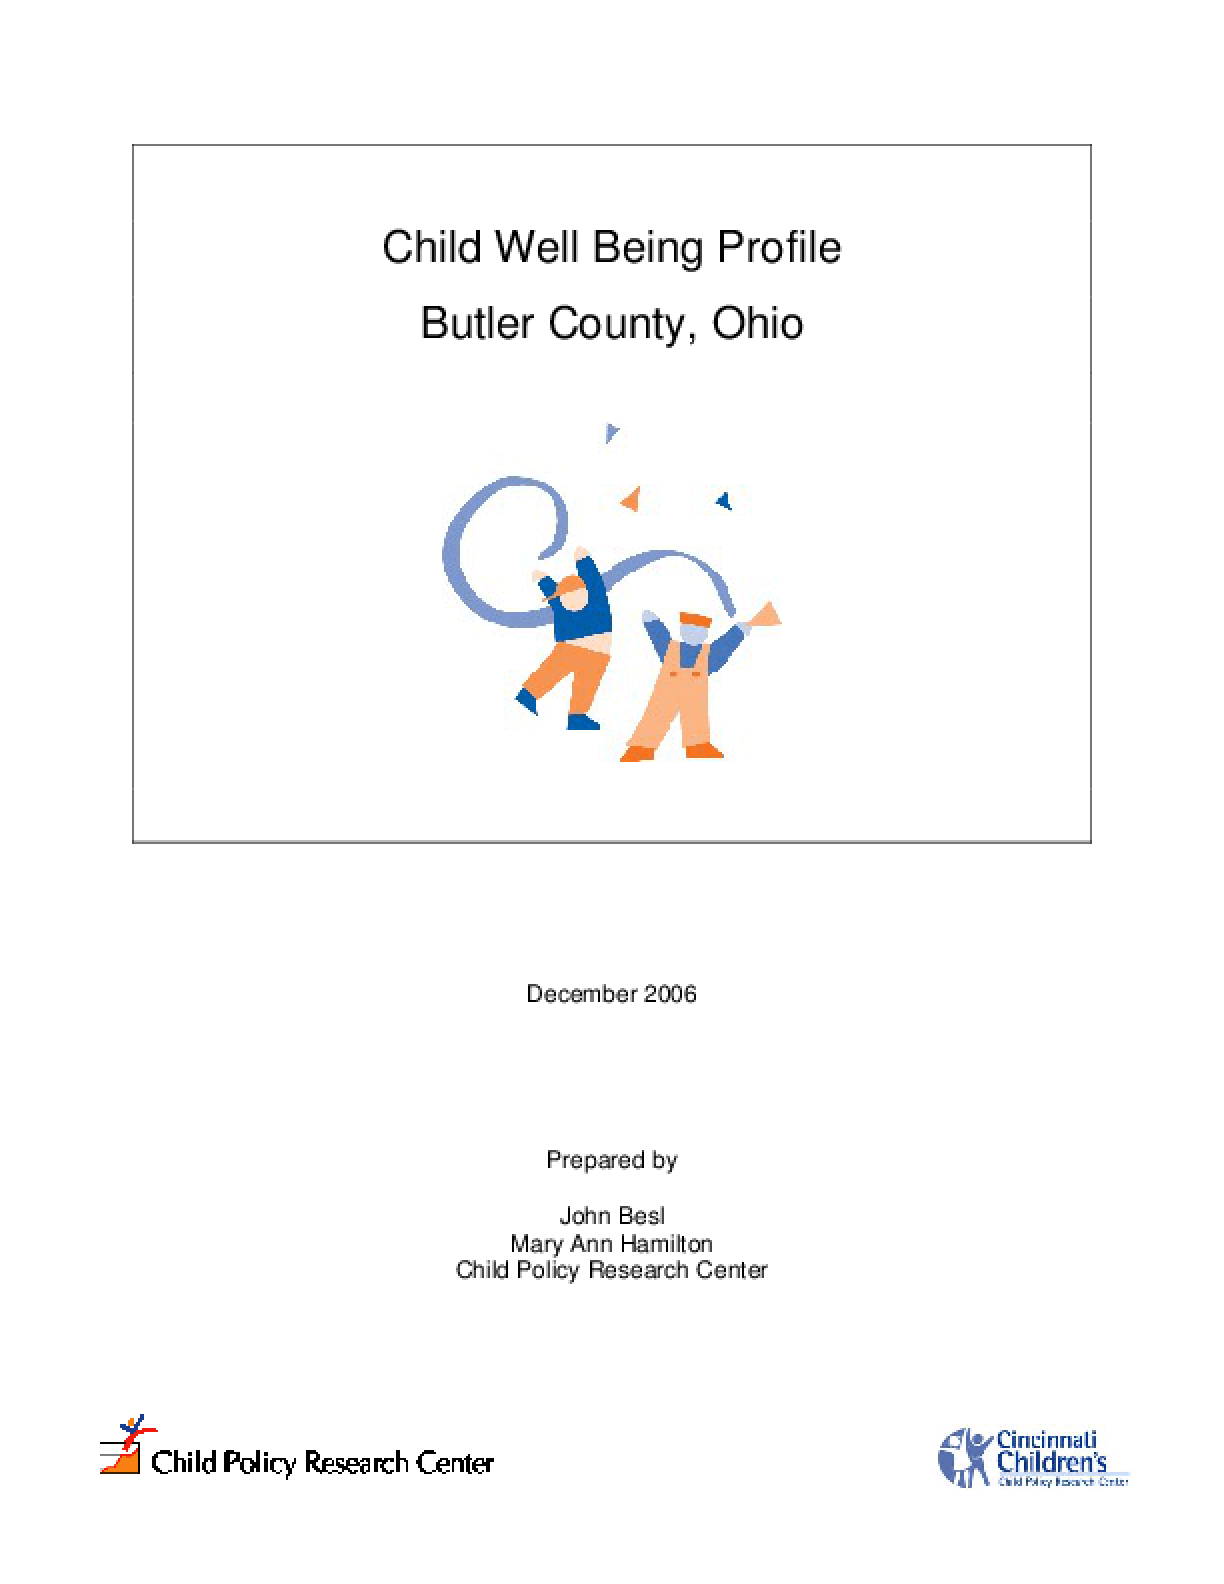 Child Well Being Profile Butler County, Ohio